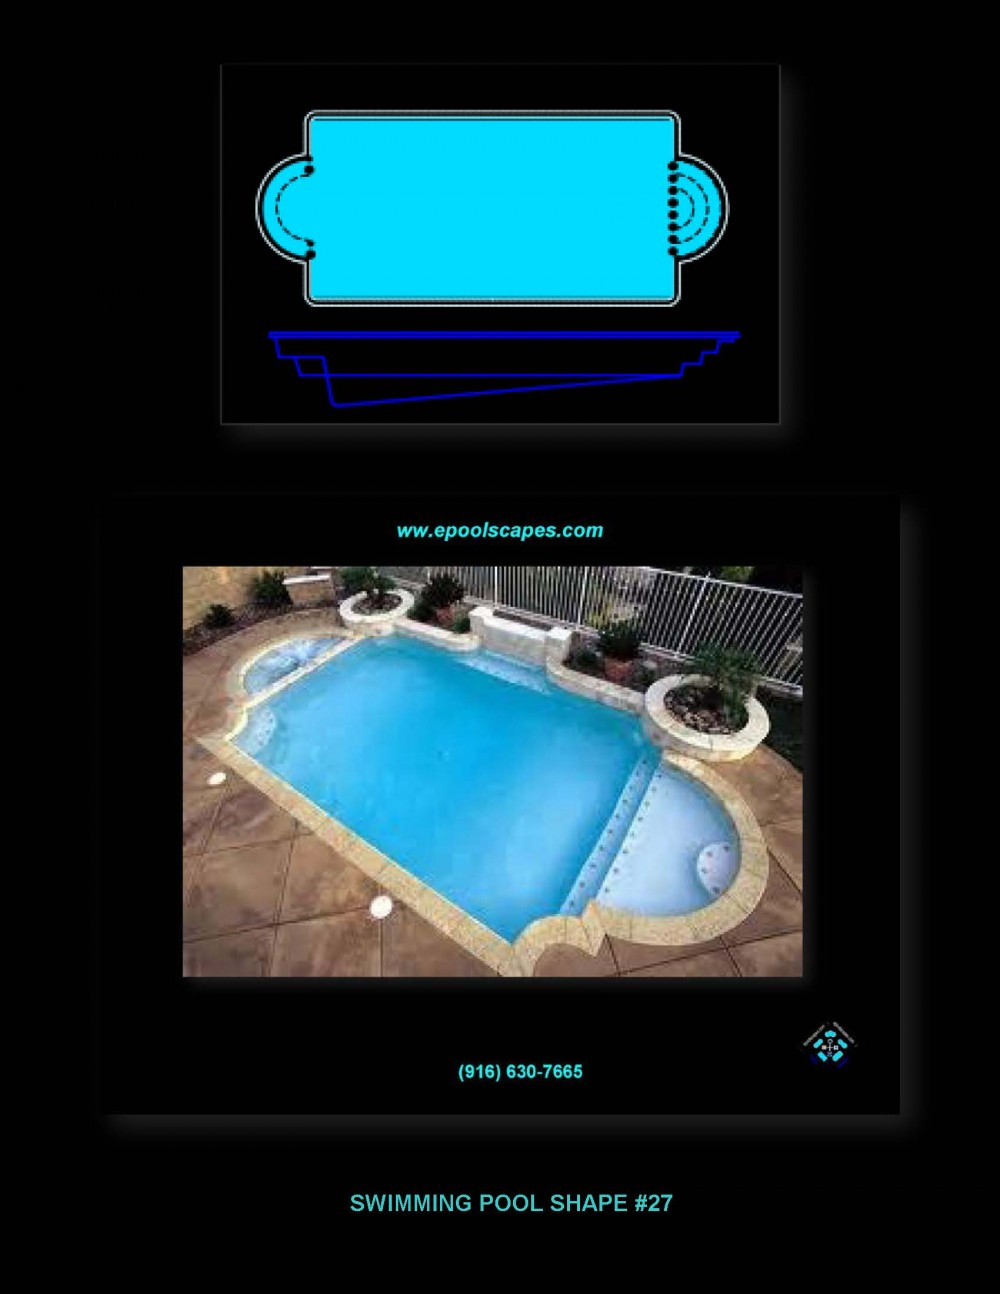 Pool Shape #27